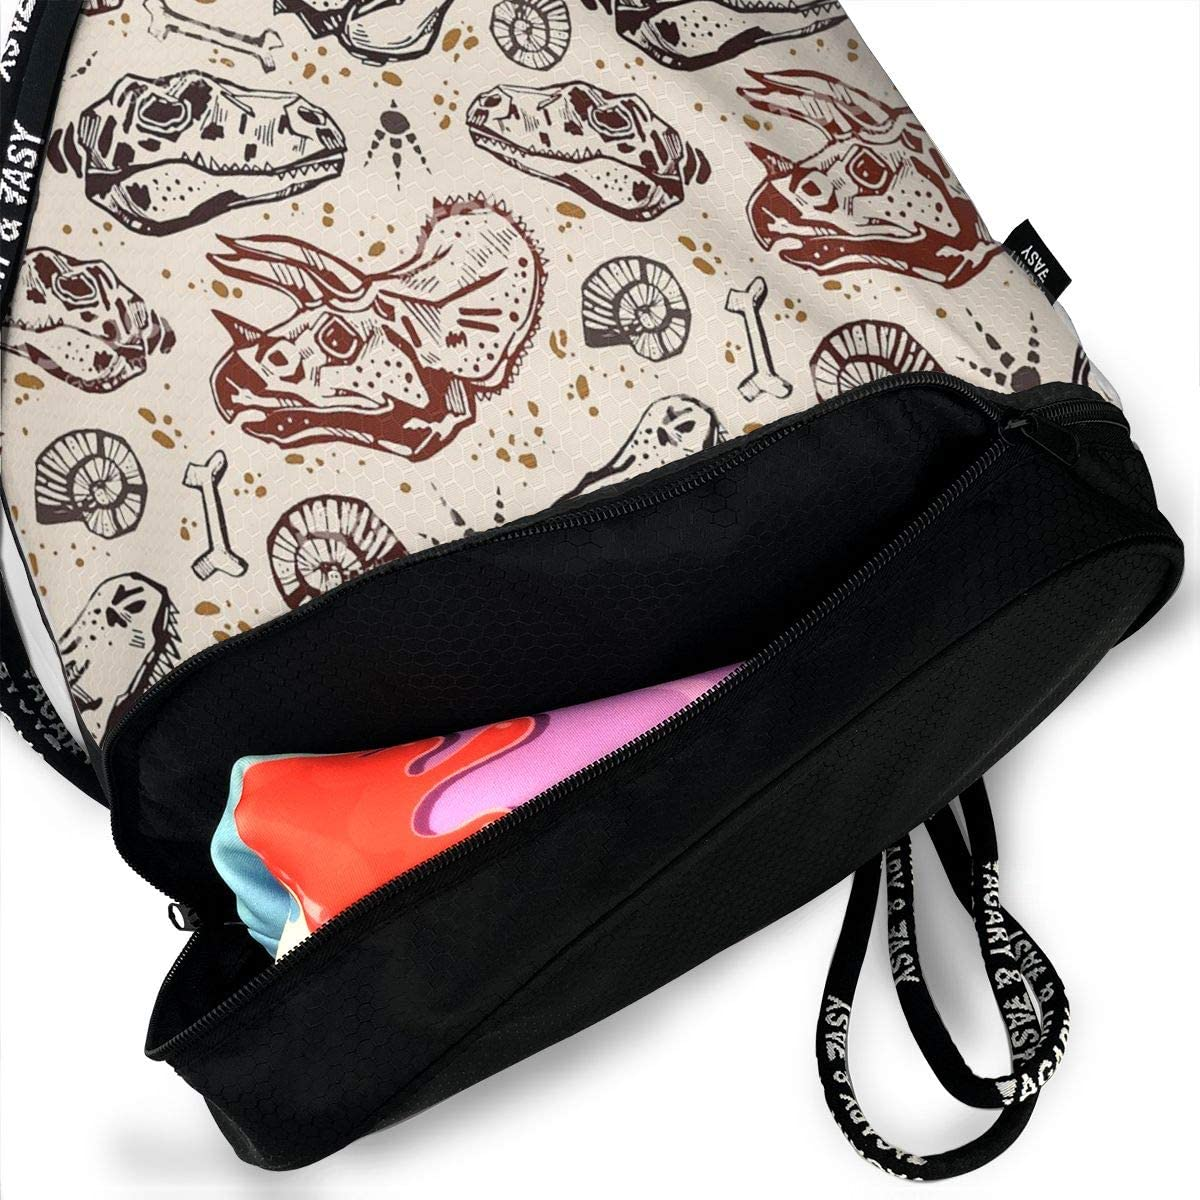 GymSack Drawstring Bag Sackpack Dinosaur Skull Print Sport Cinch Pack Simple Bundle Pocke Backpack For Men Women